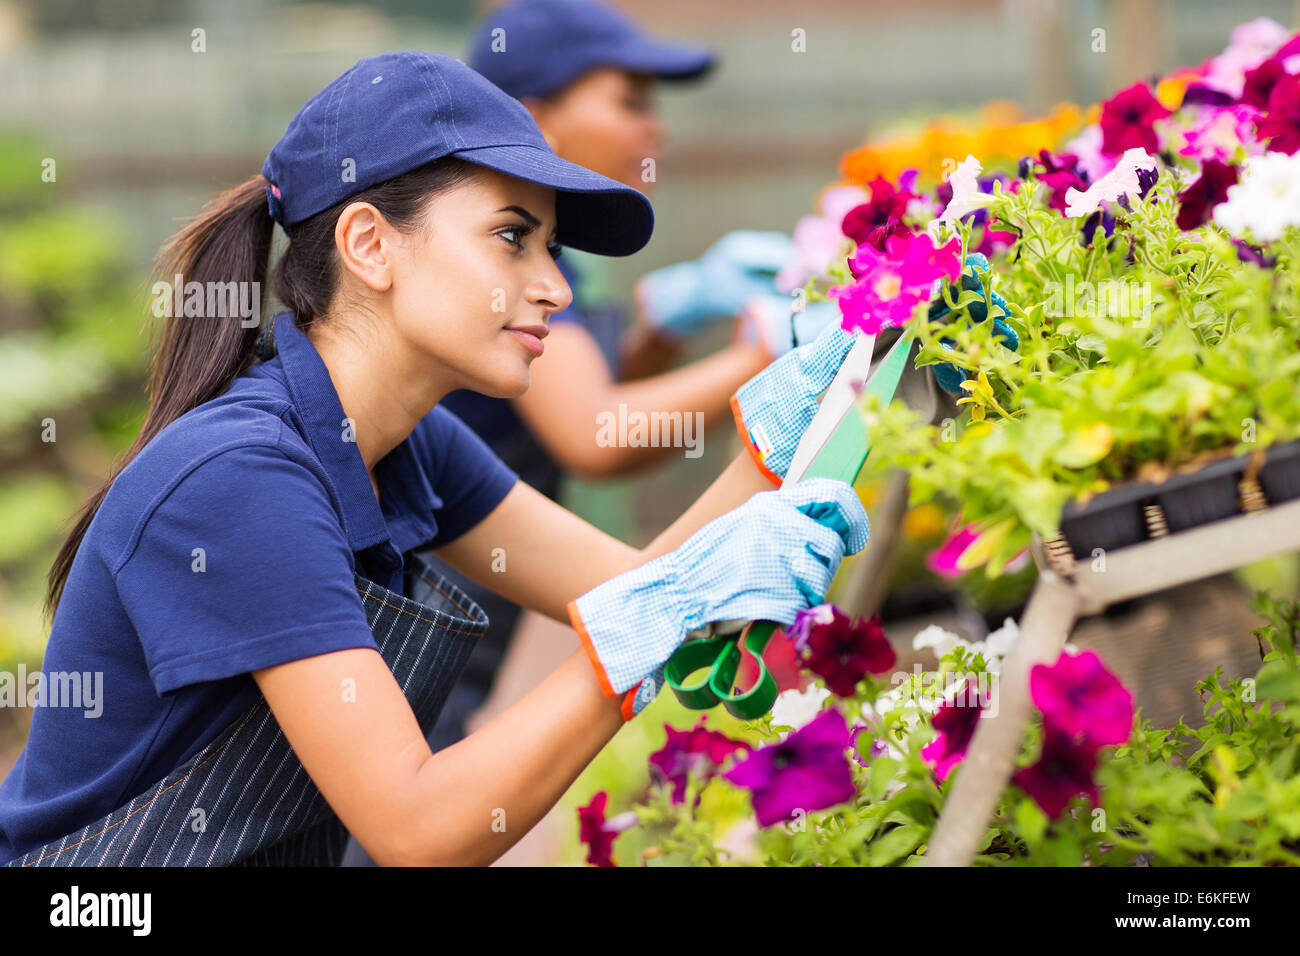 female florist trimming flowers in greenhouse - Stock Image